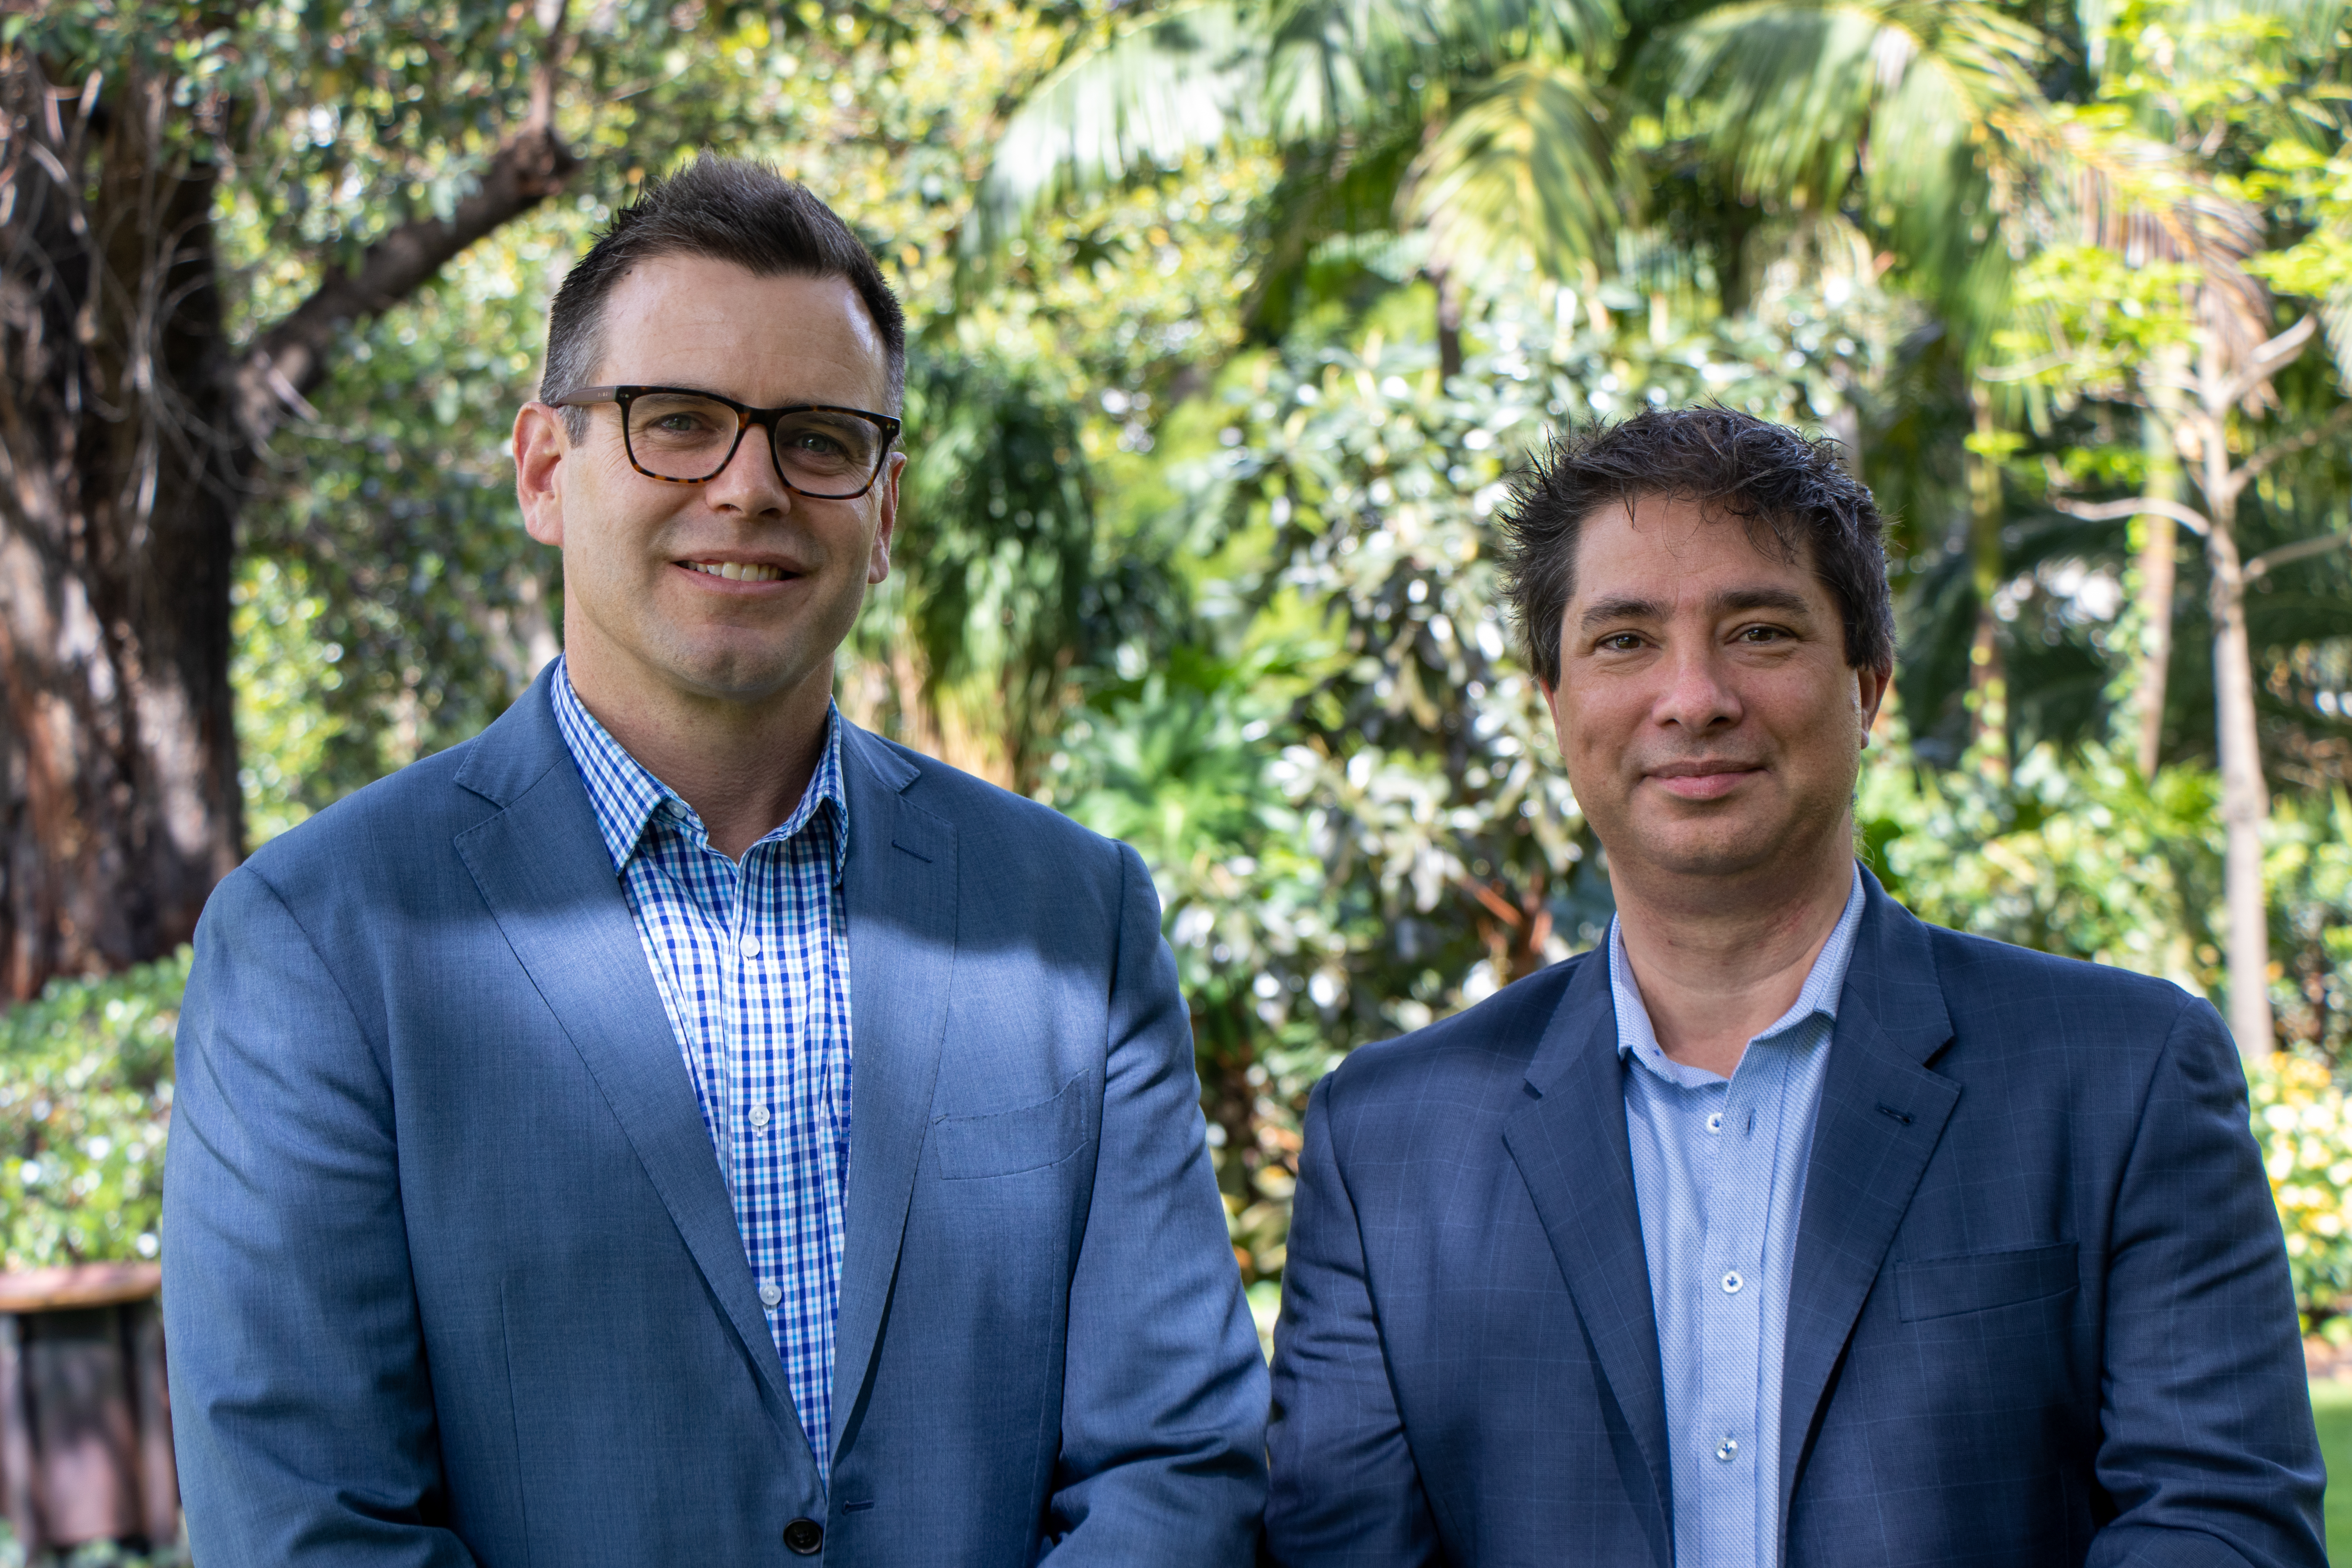 HIF and Little Green Pharma enter partnership in support of medicinal cannabis access and research in Australia